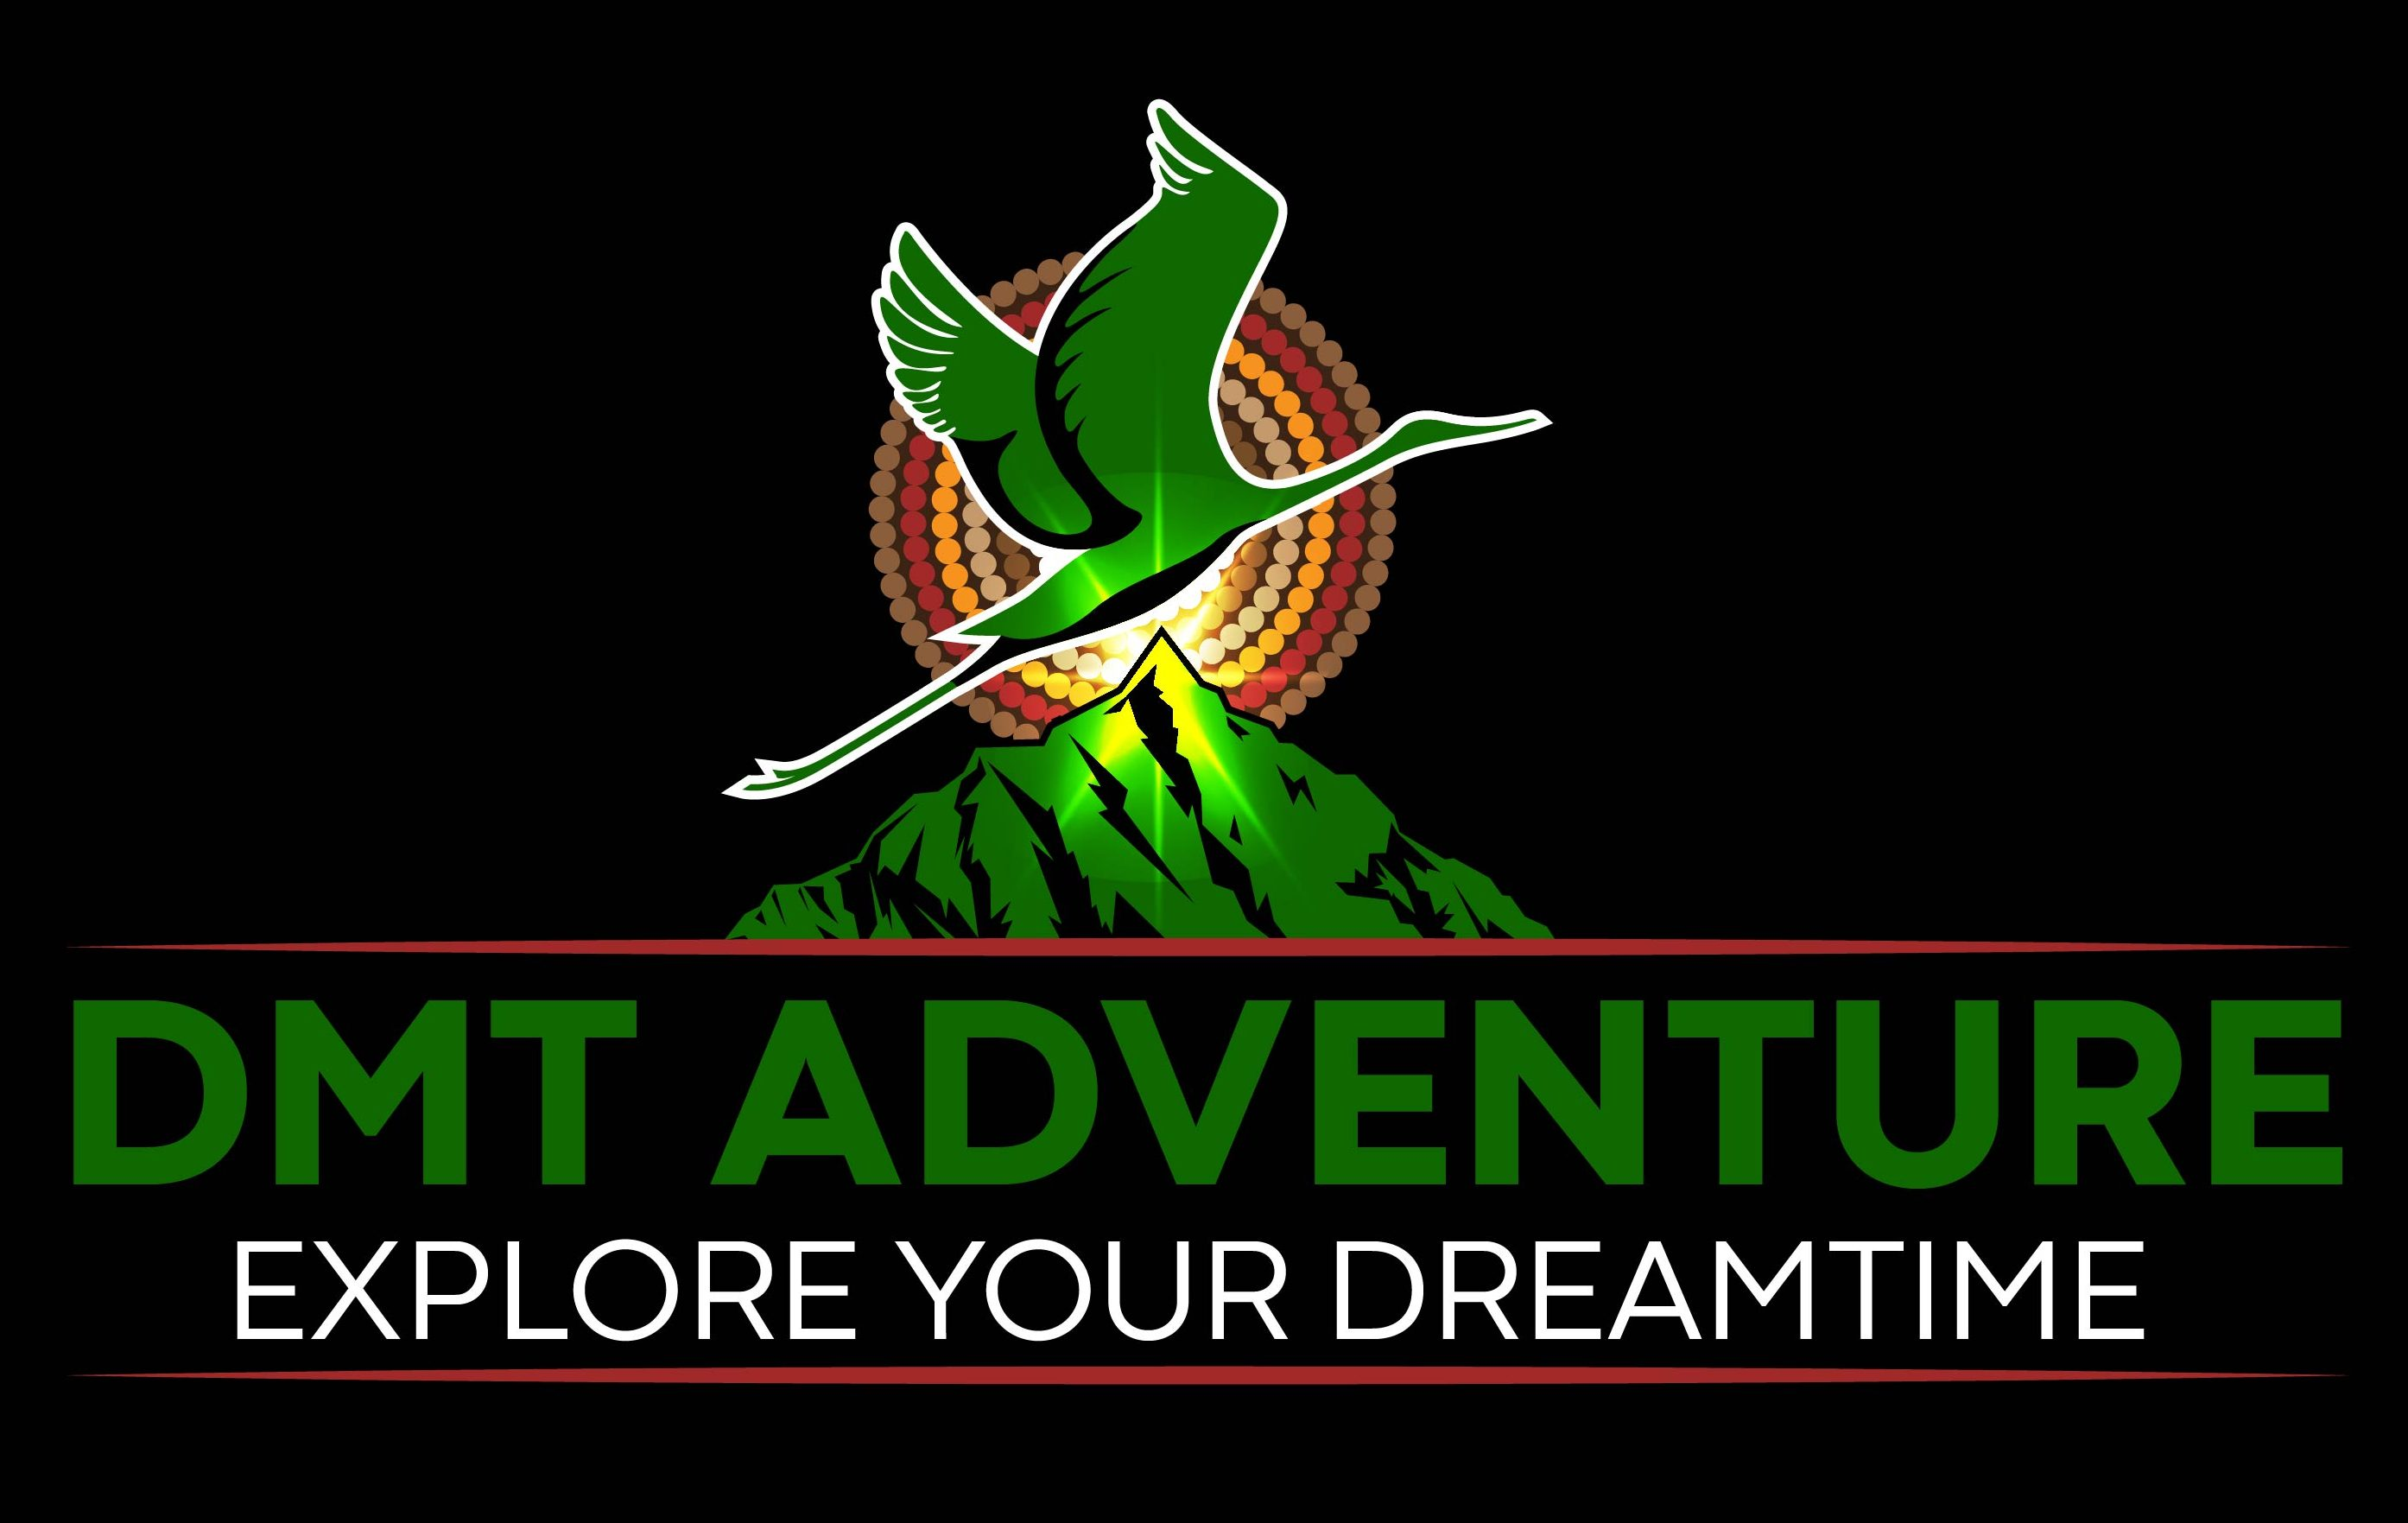 EXPLORE YOUR DREAMTIME